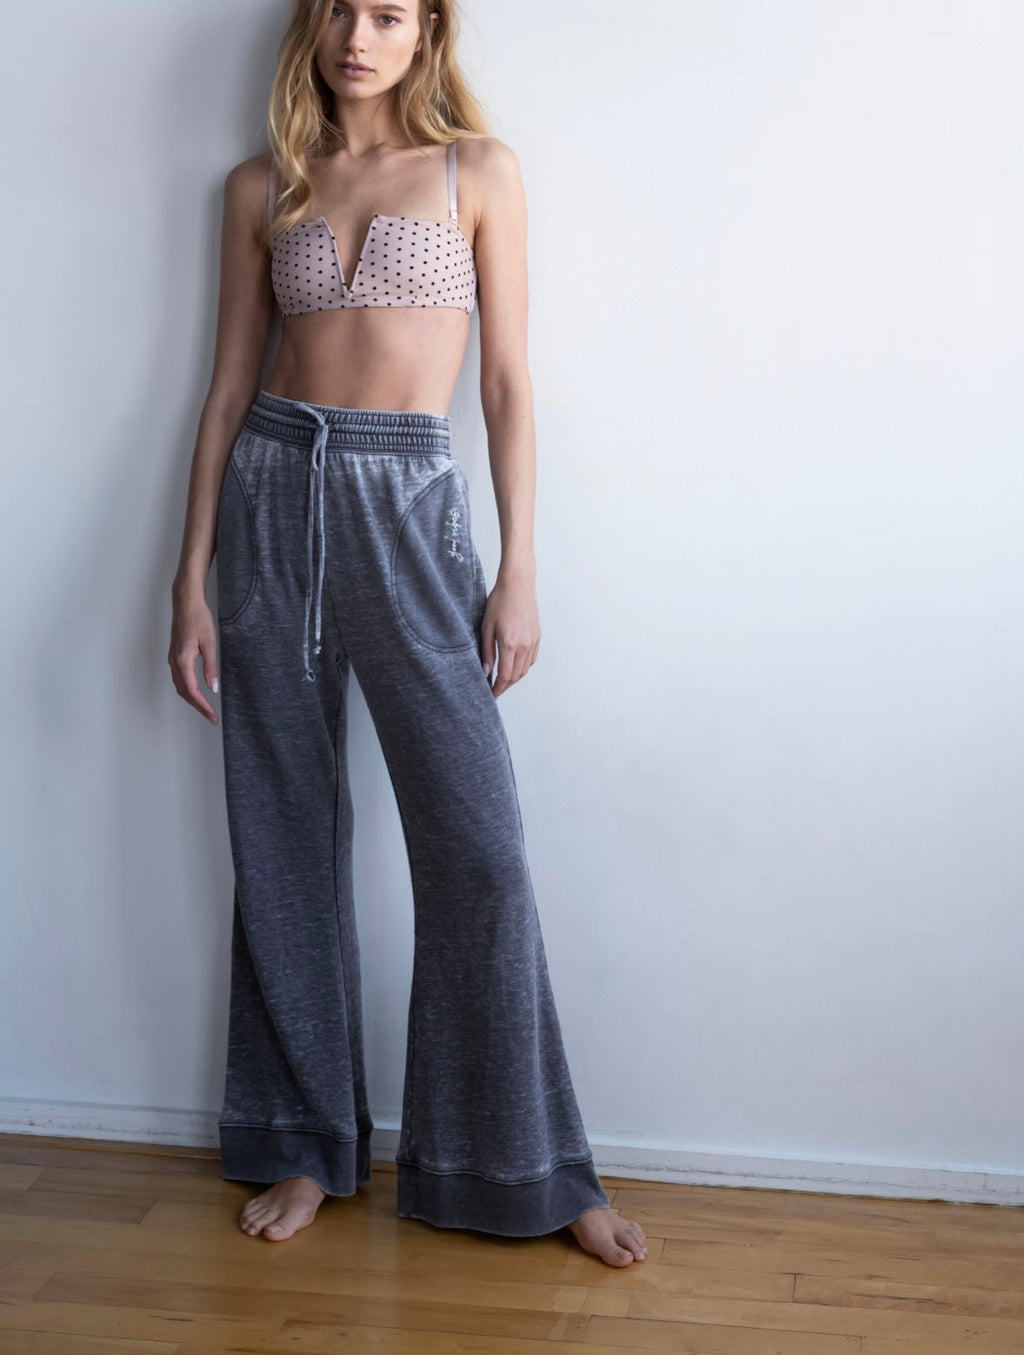 Free People Cozy Cool Girl Pant in Black